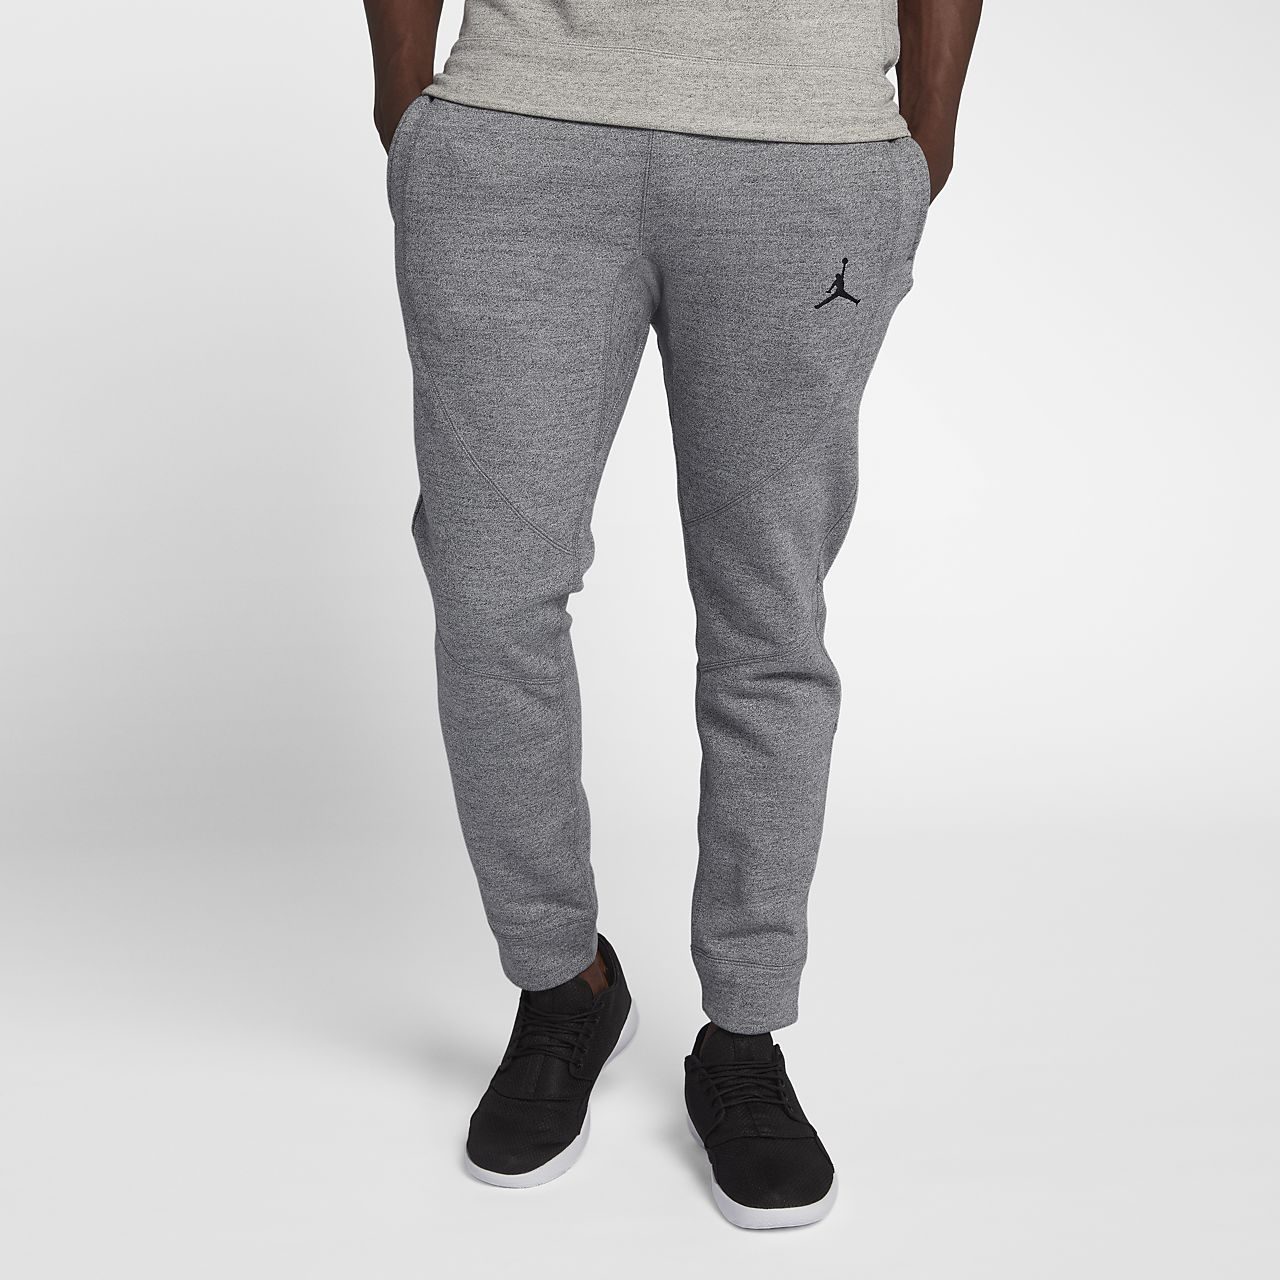 962526defec Jordan Sportswear Wings Men's Fleece Pants. Nike.com